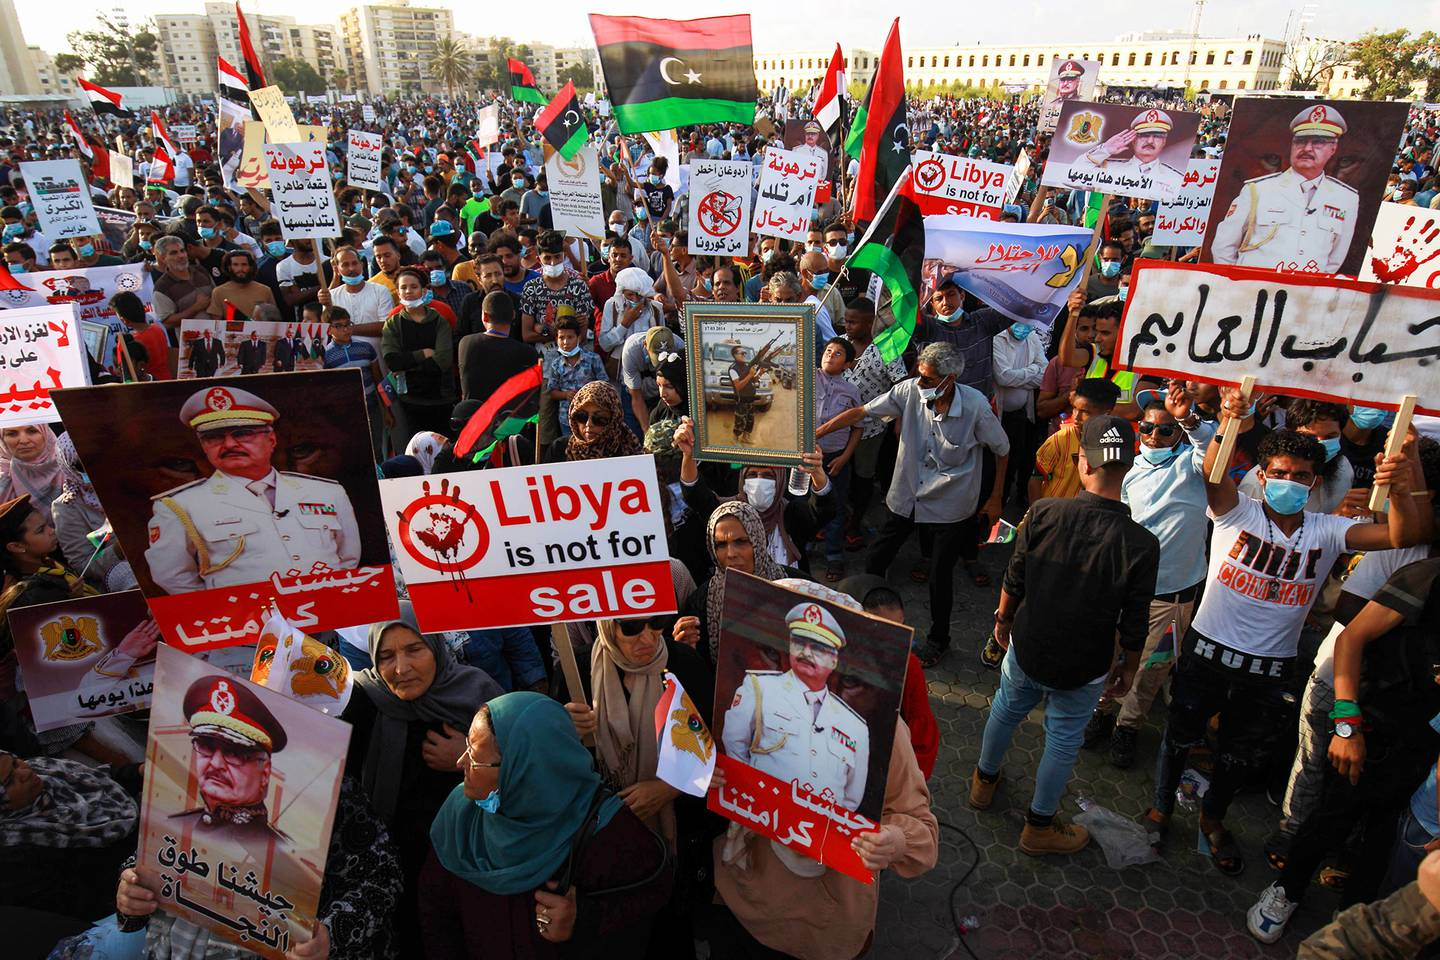 Supporters of Libyan military strongman Khalifa Haftar take part in a gathering in the eastern Libyan port city of Benghazi on July 5, 2020, to protest against Turkish intervention in the country's affairs.